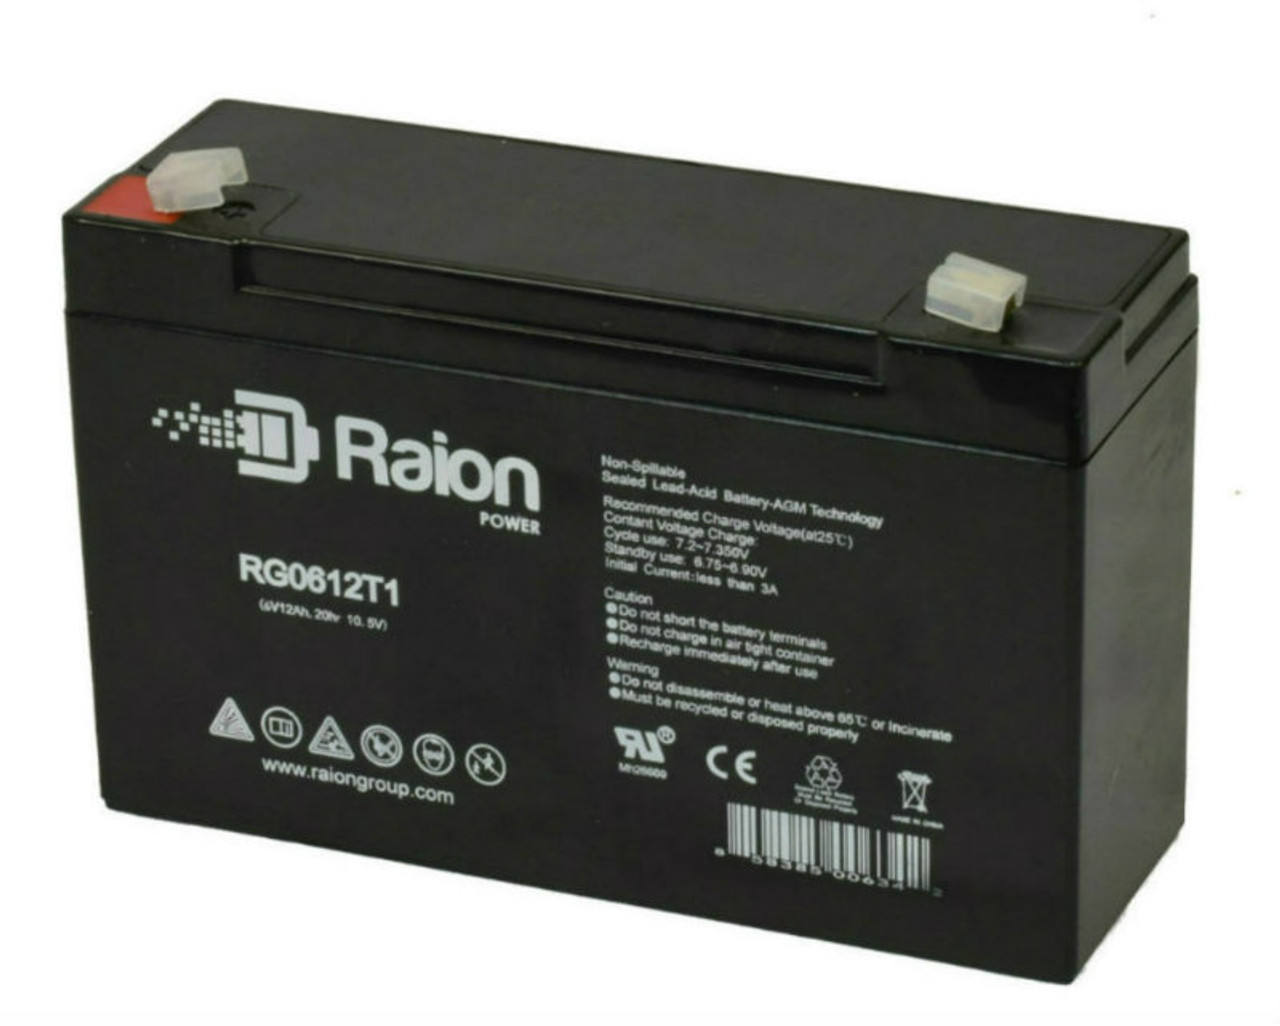 Raion Power RG06120T1 Replacement Battery Pack for Siltron EM64 emergency light